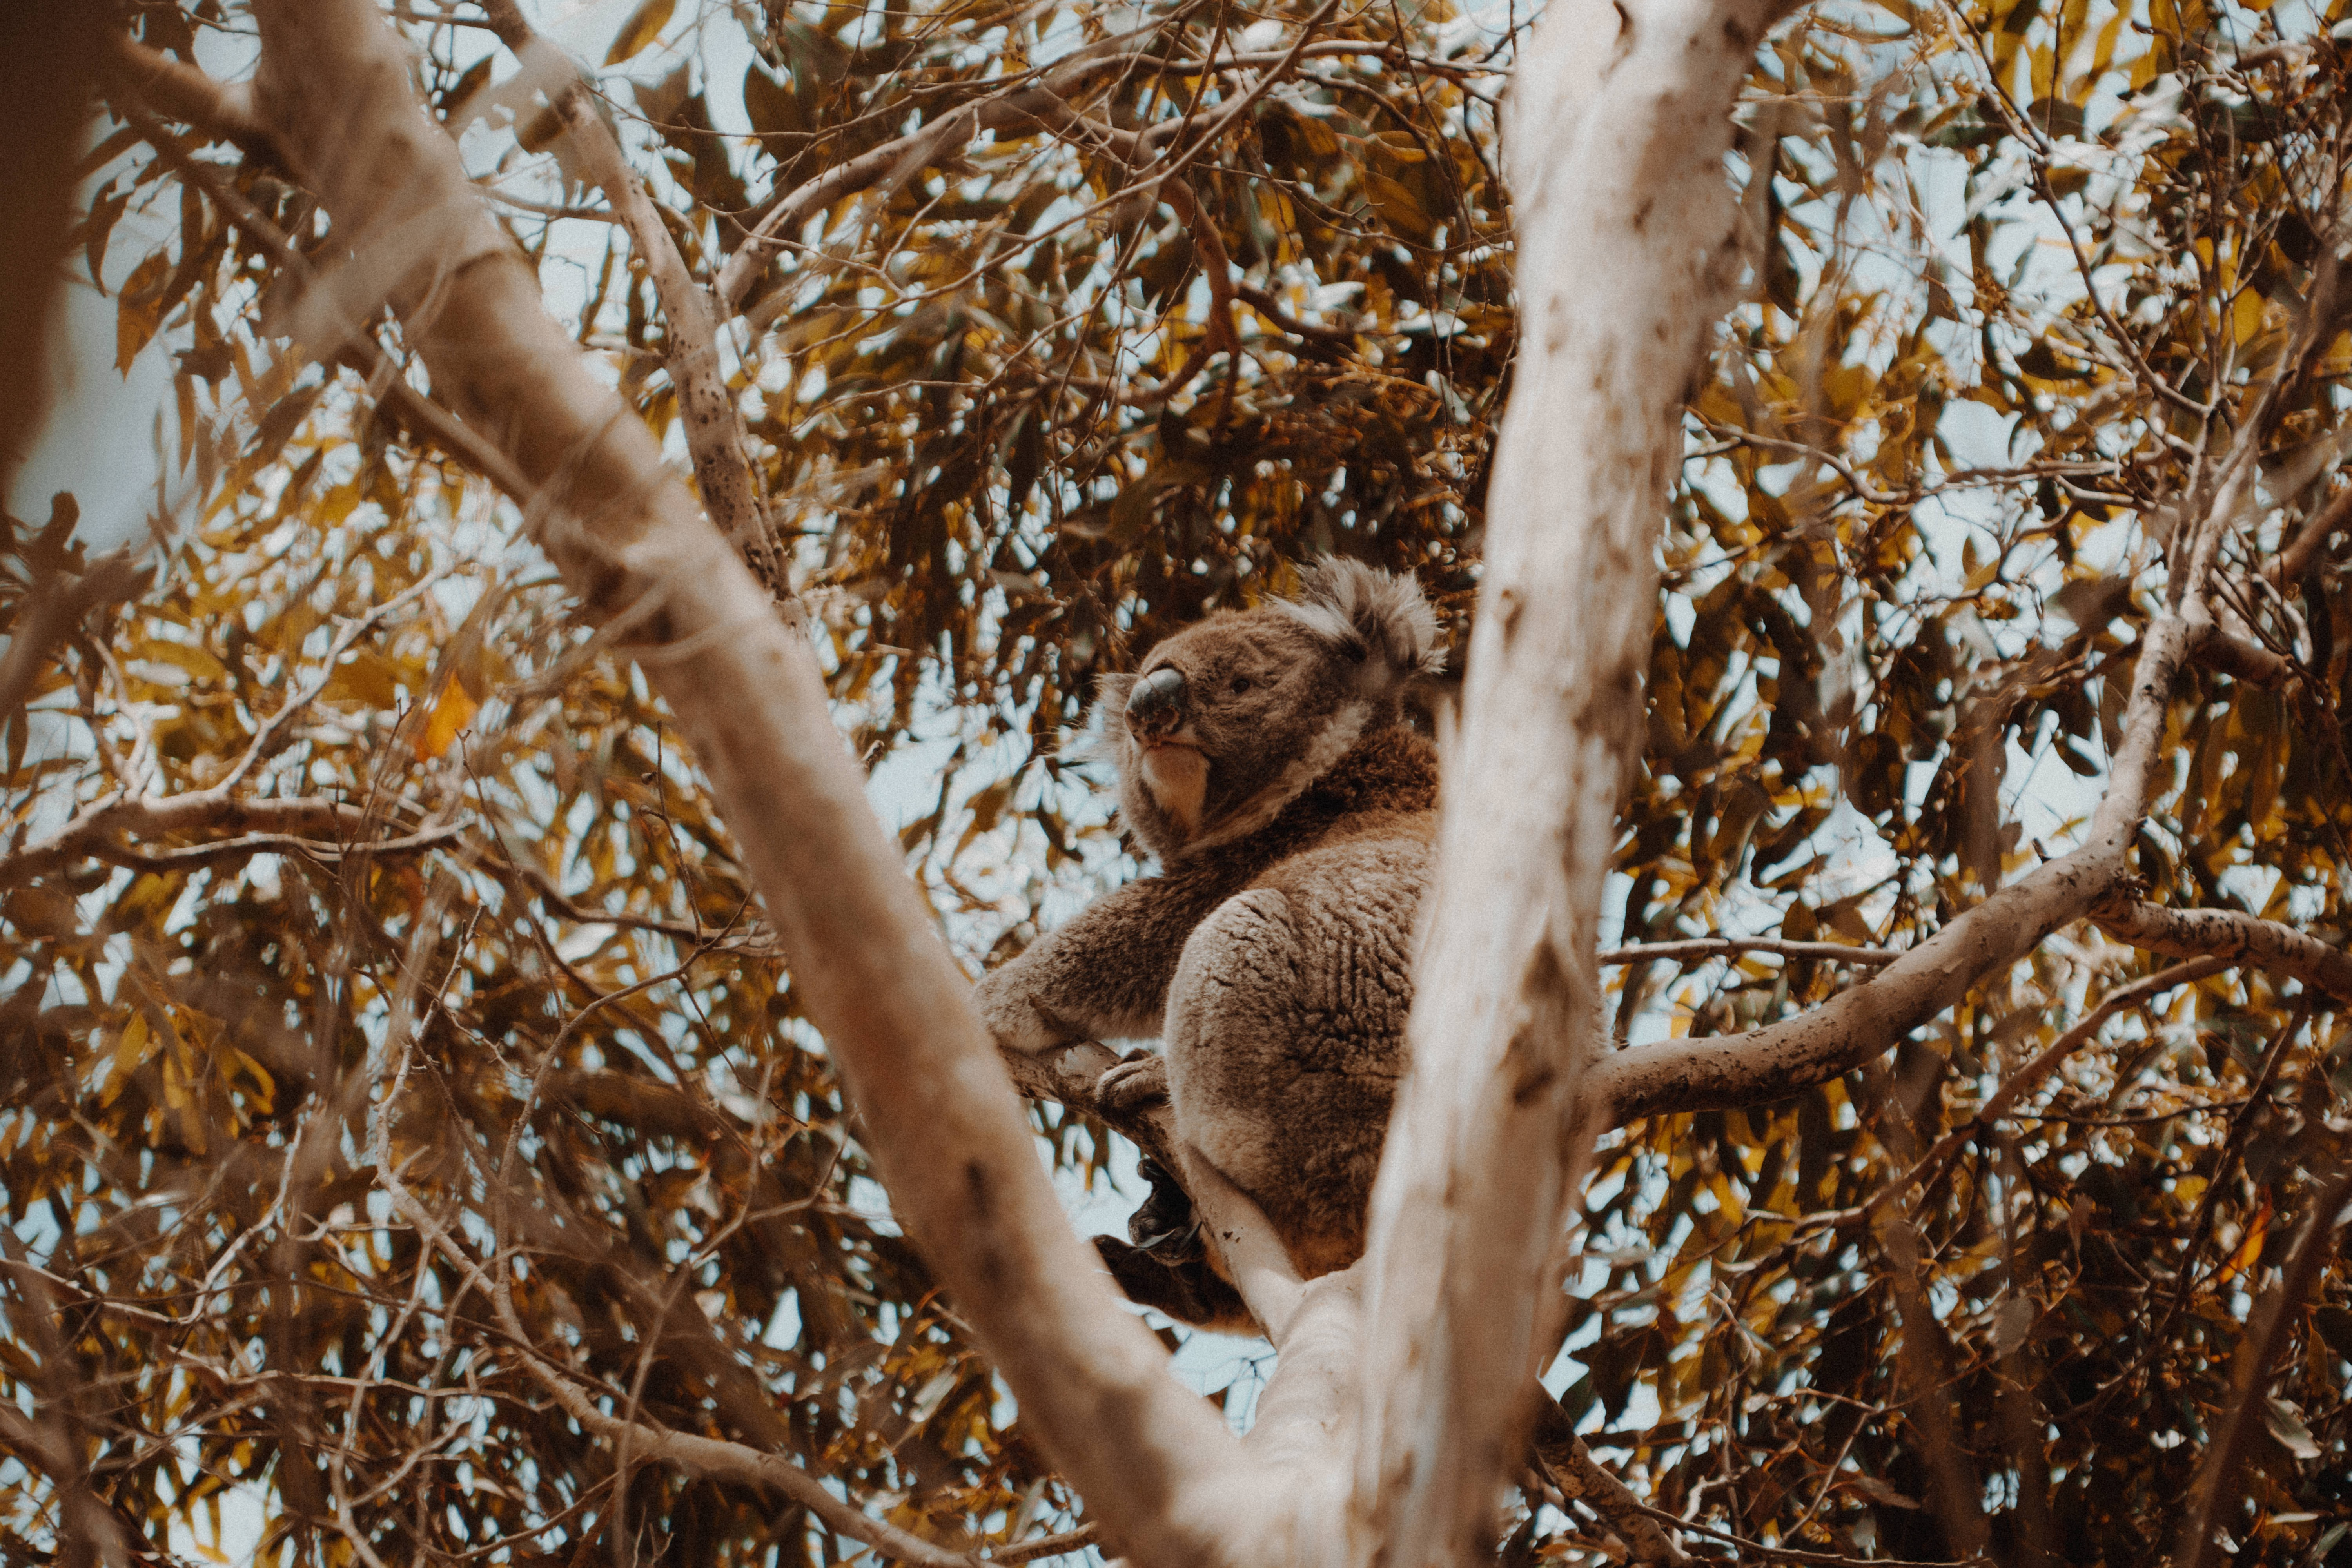 105274 download wallpaper Animals, Koala, Wood, Tree, Animal, Exotic, Wildlife screensavers and pictures for free